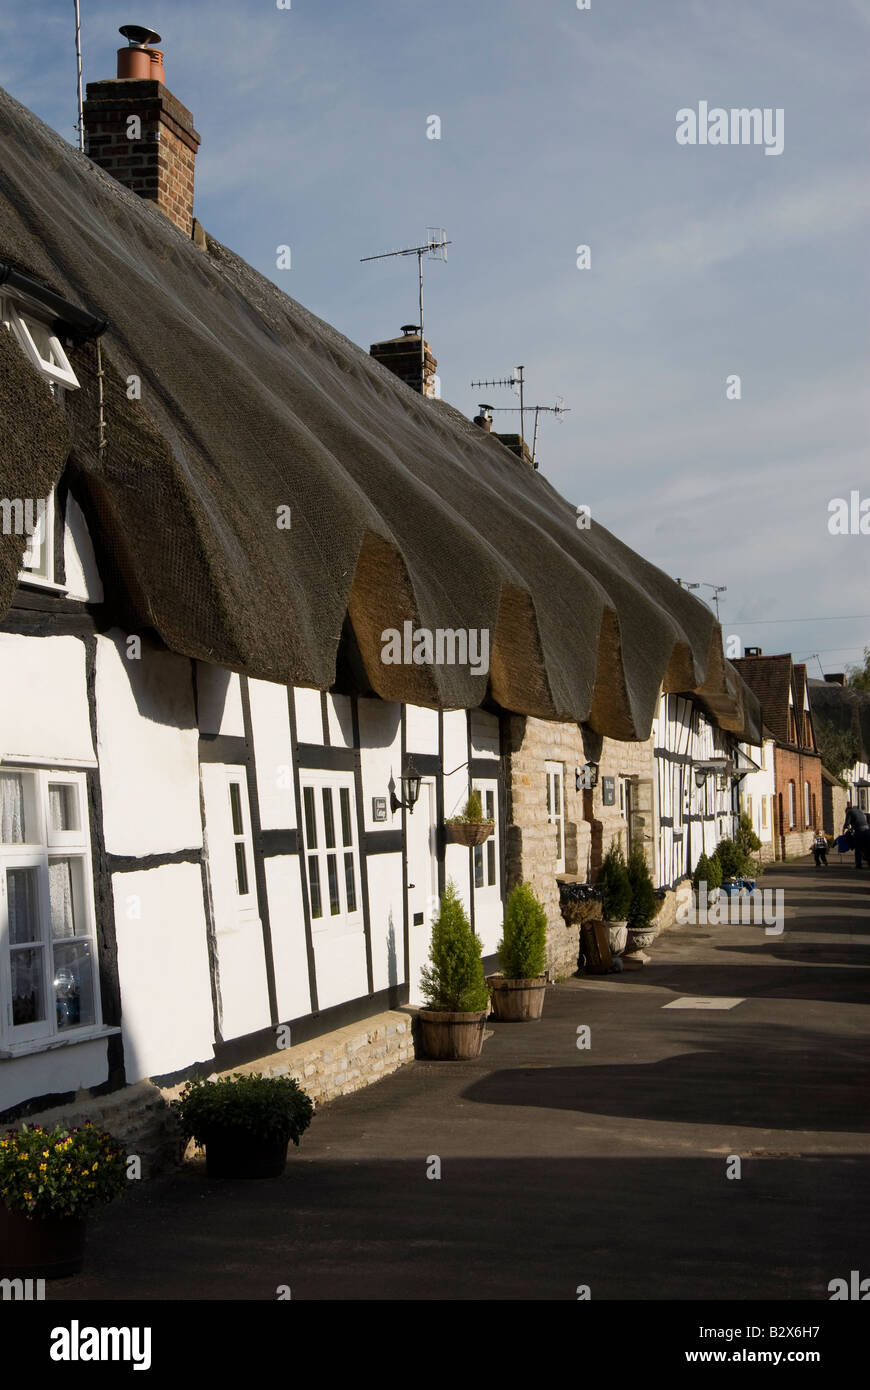 Thatched black and white timbered cottages in Offenham High Street, Worcestershire, UK. - Stock Image